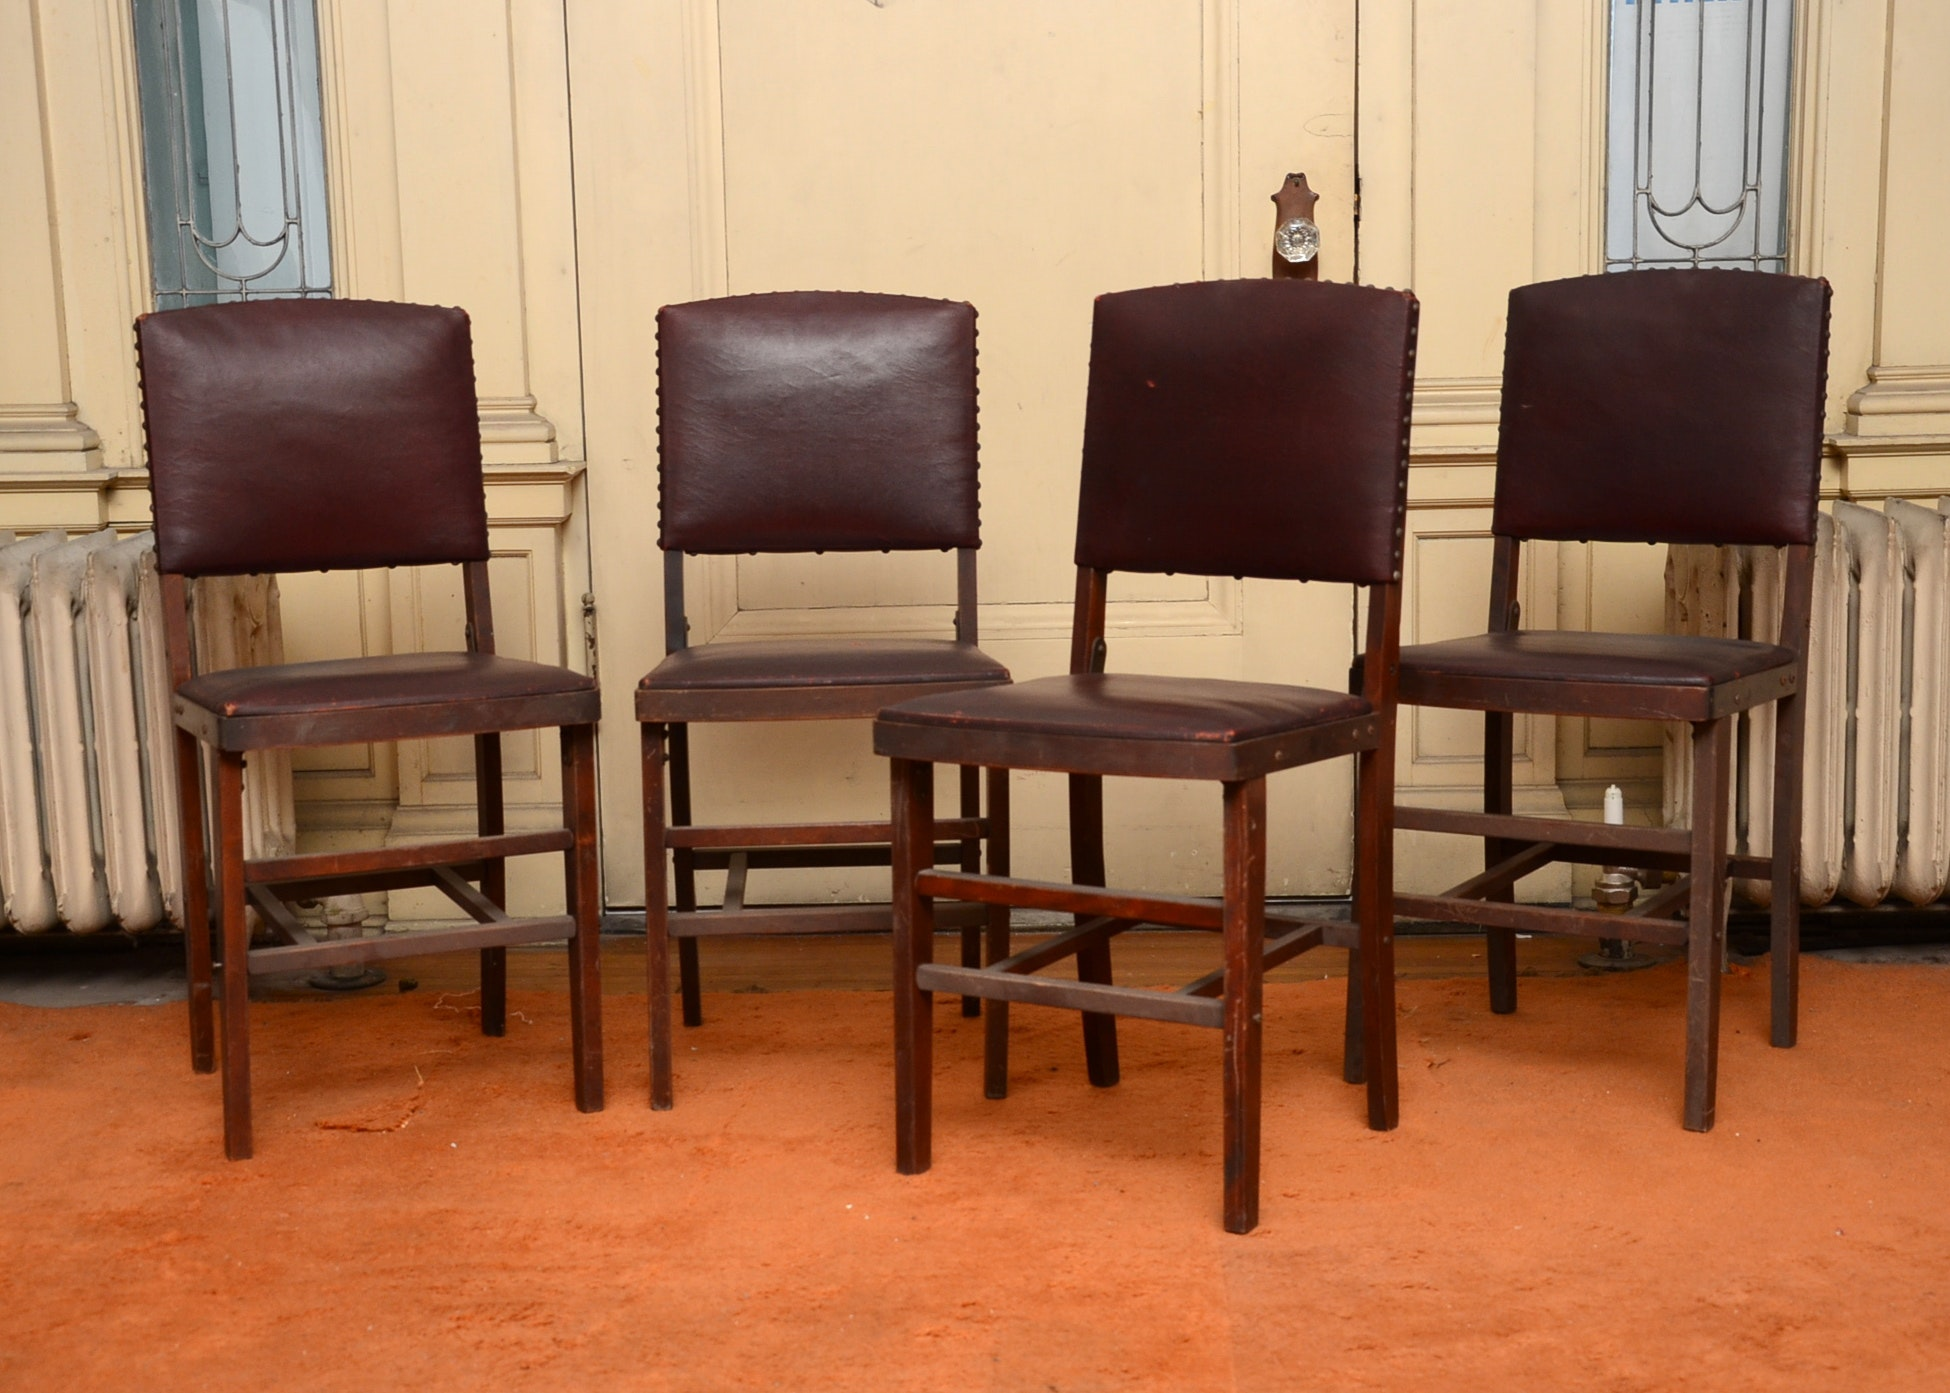 Four Vintage Folding Wooden Chairs ...